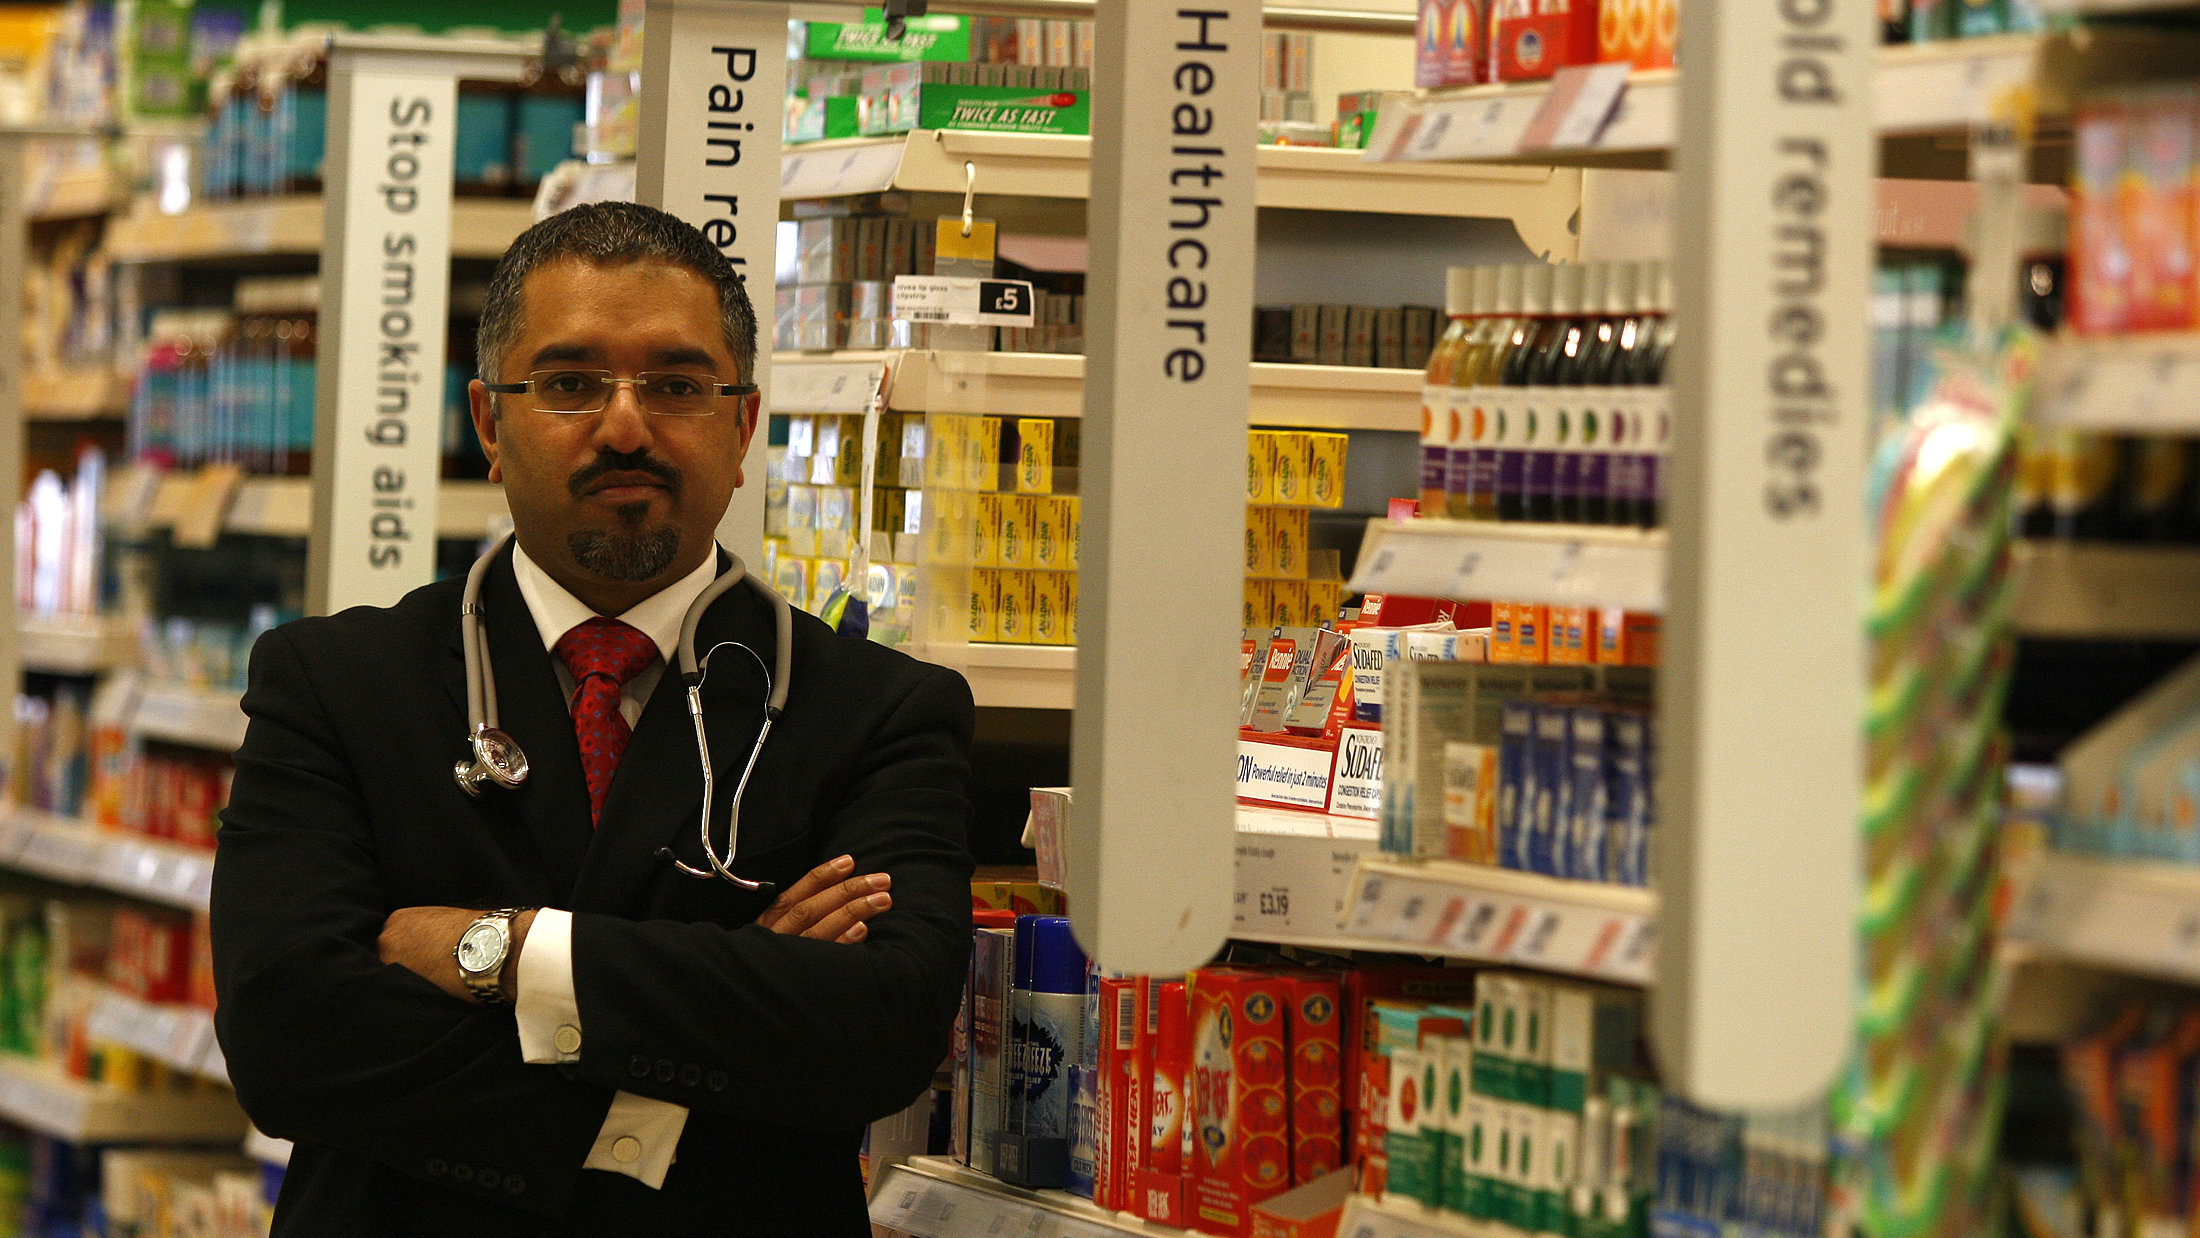 Doctor standing in pharmacy